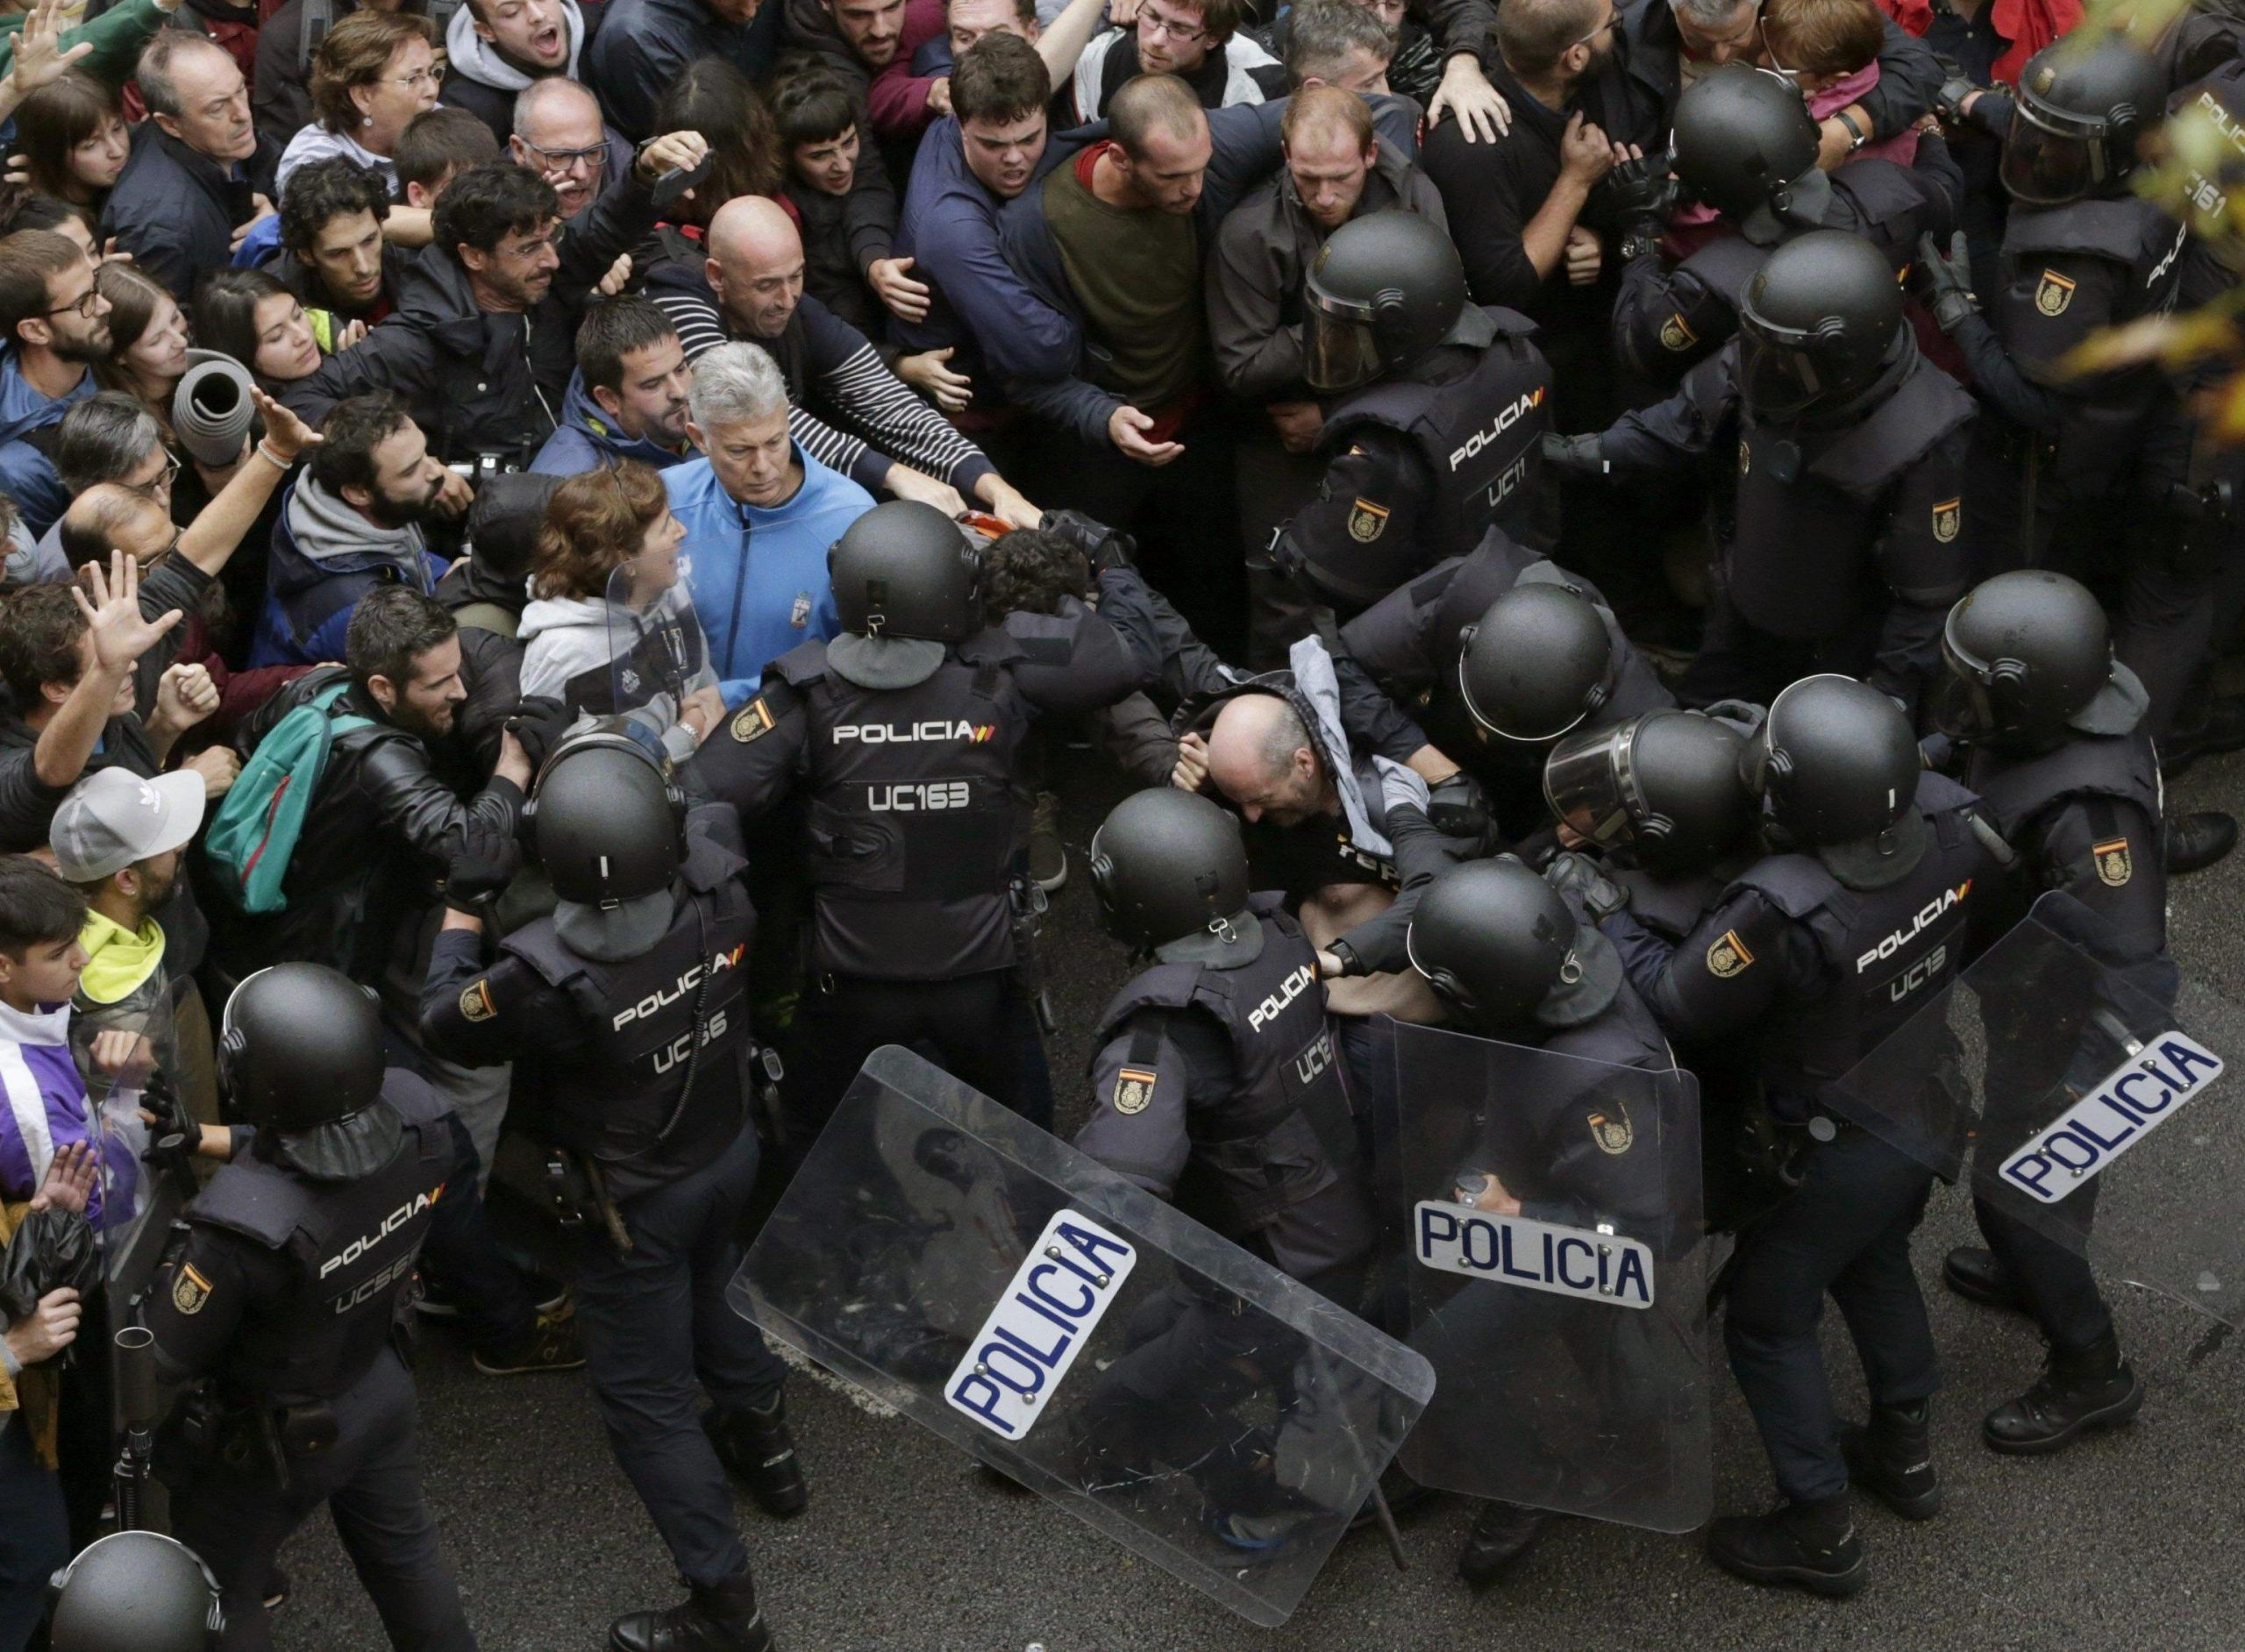 Clashes during the Catalan independence referendum